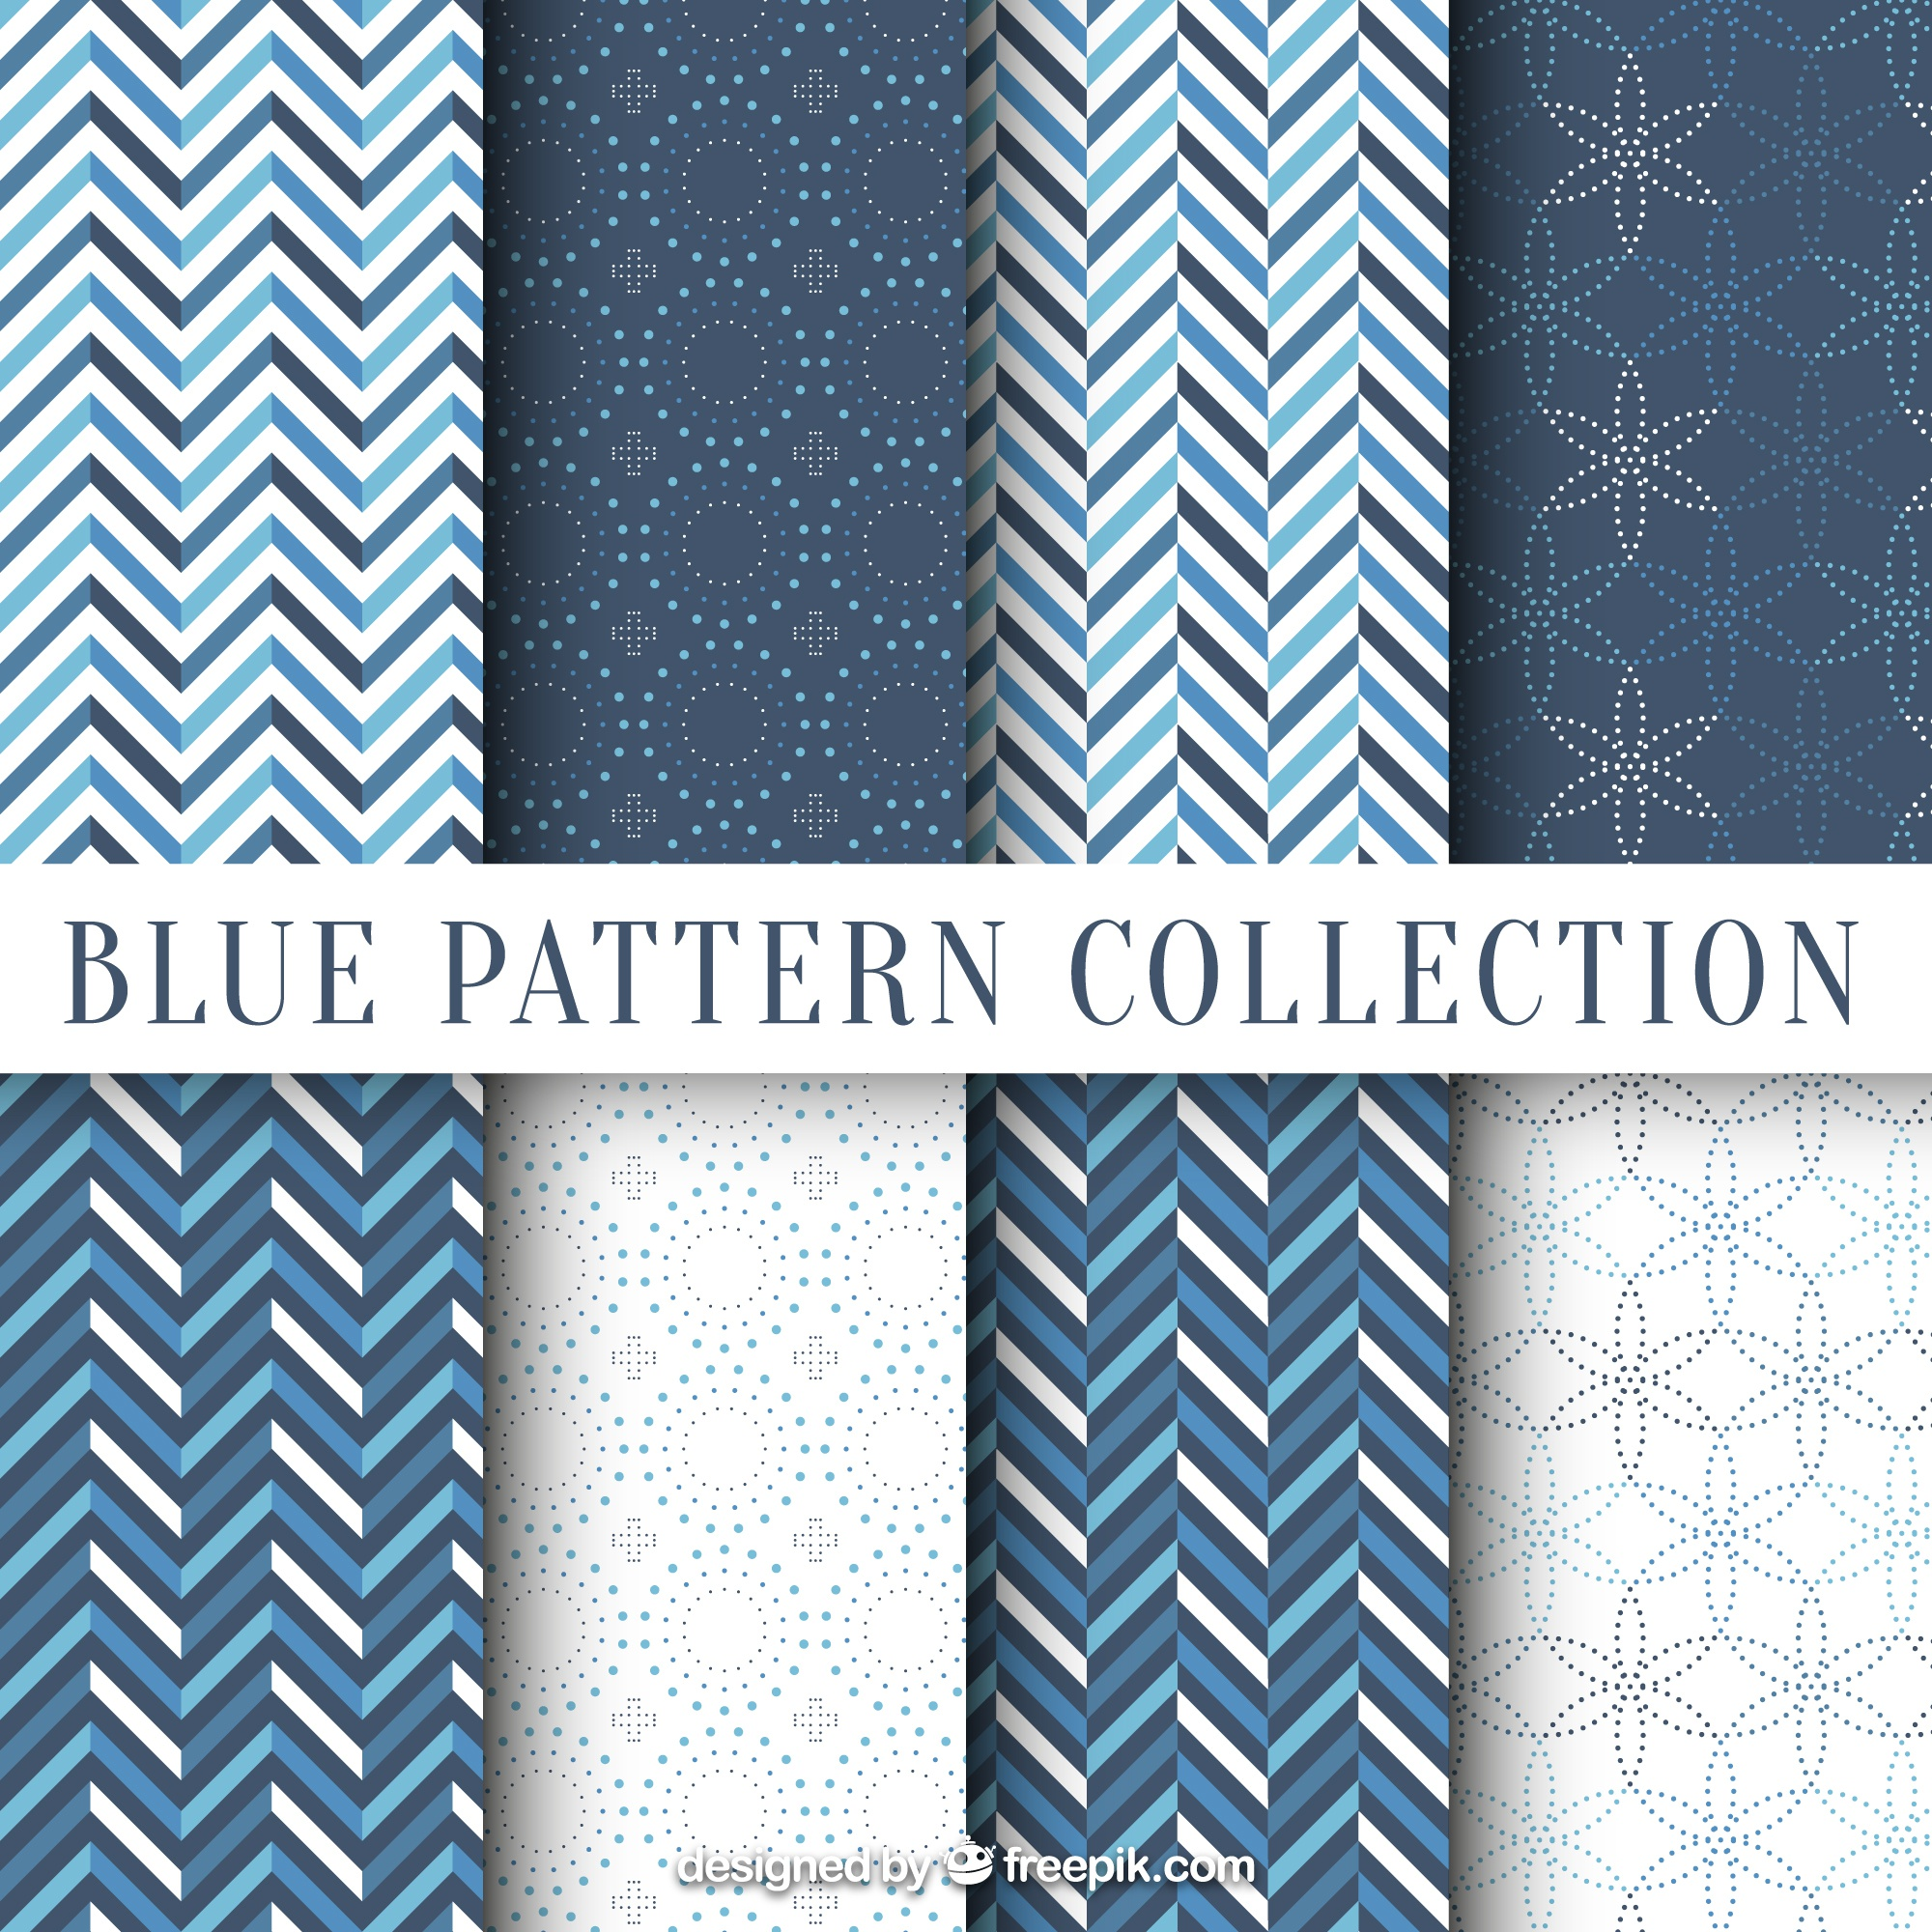 Patterns with cute geometric shapes